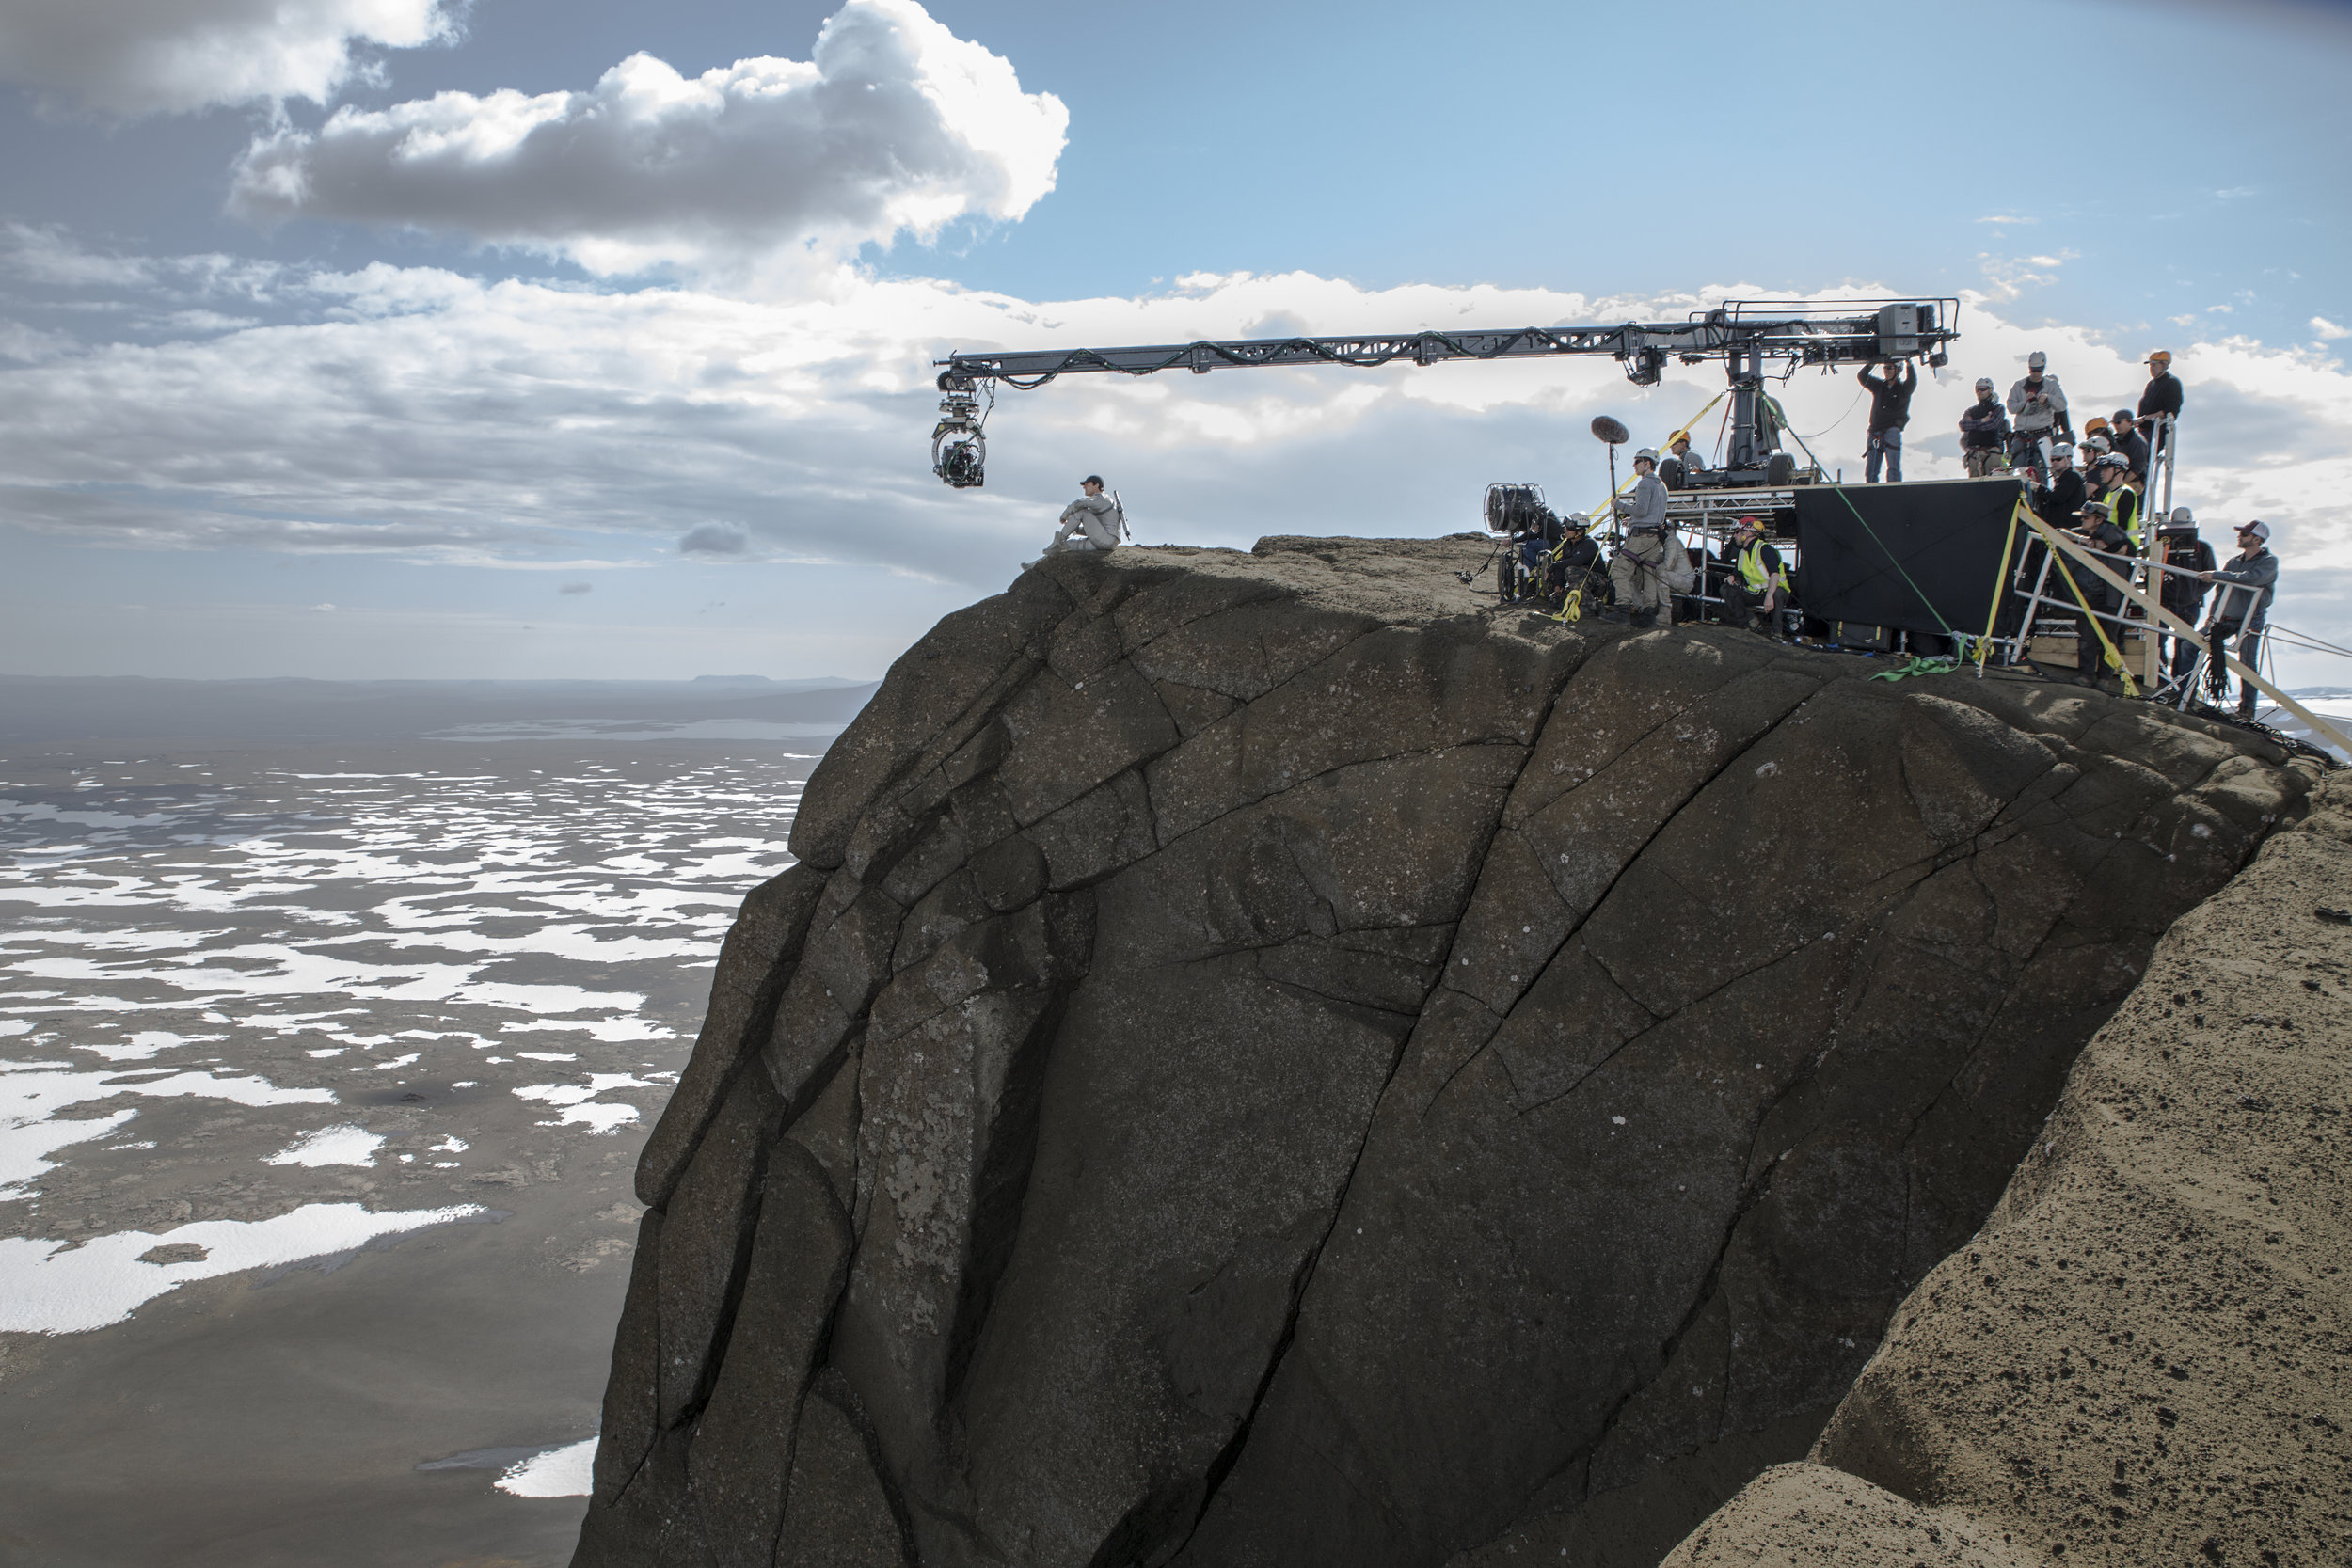 Tom Cruise, on location for the 2013 movie Oblivion, at the Jarlhettur mountain ridge, Iceland